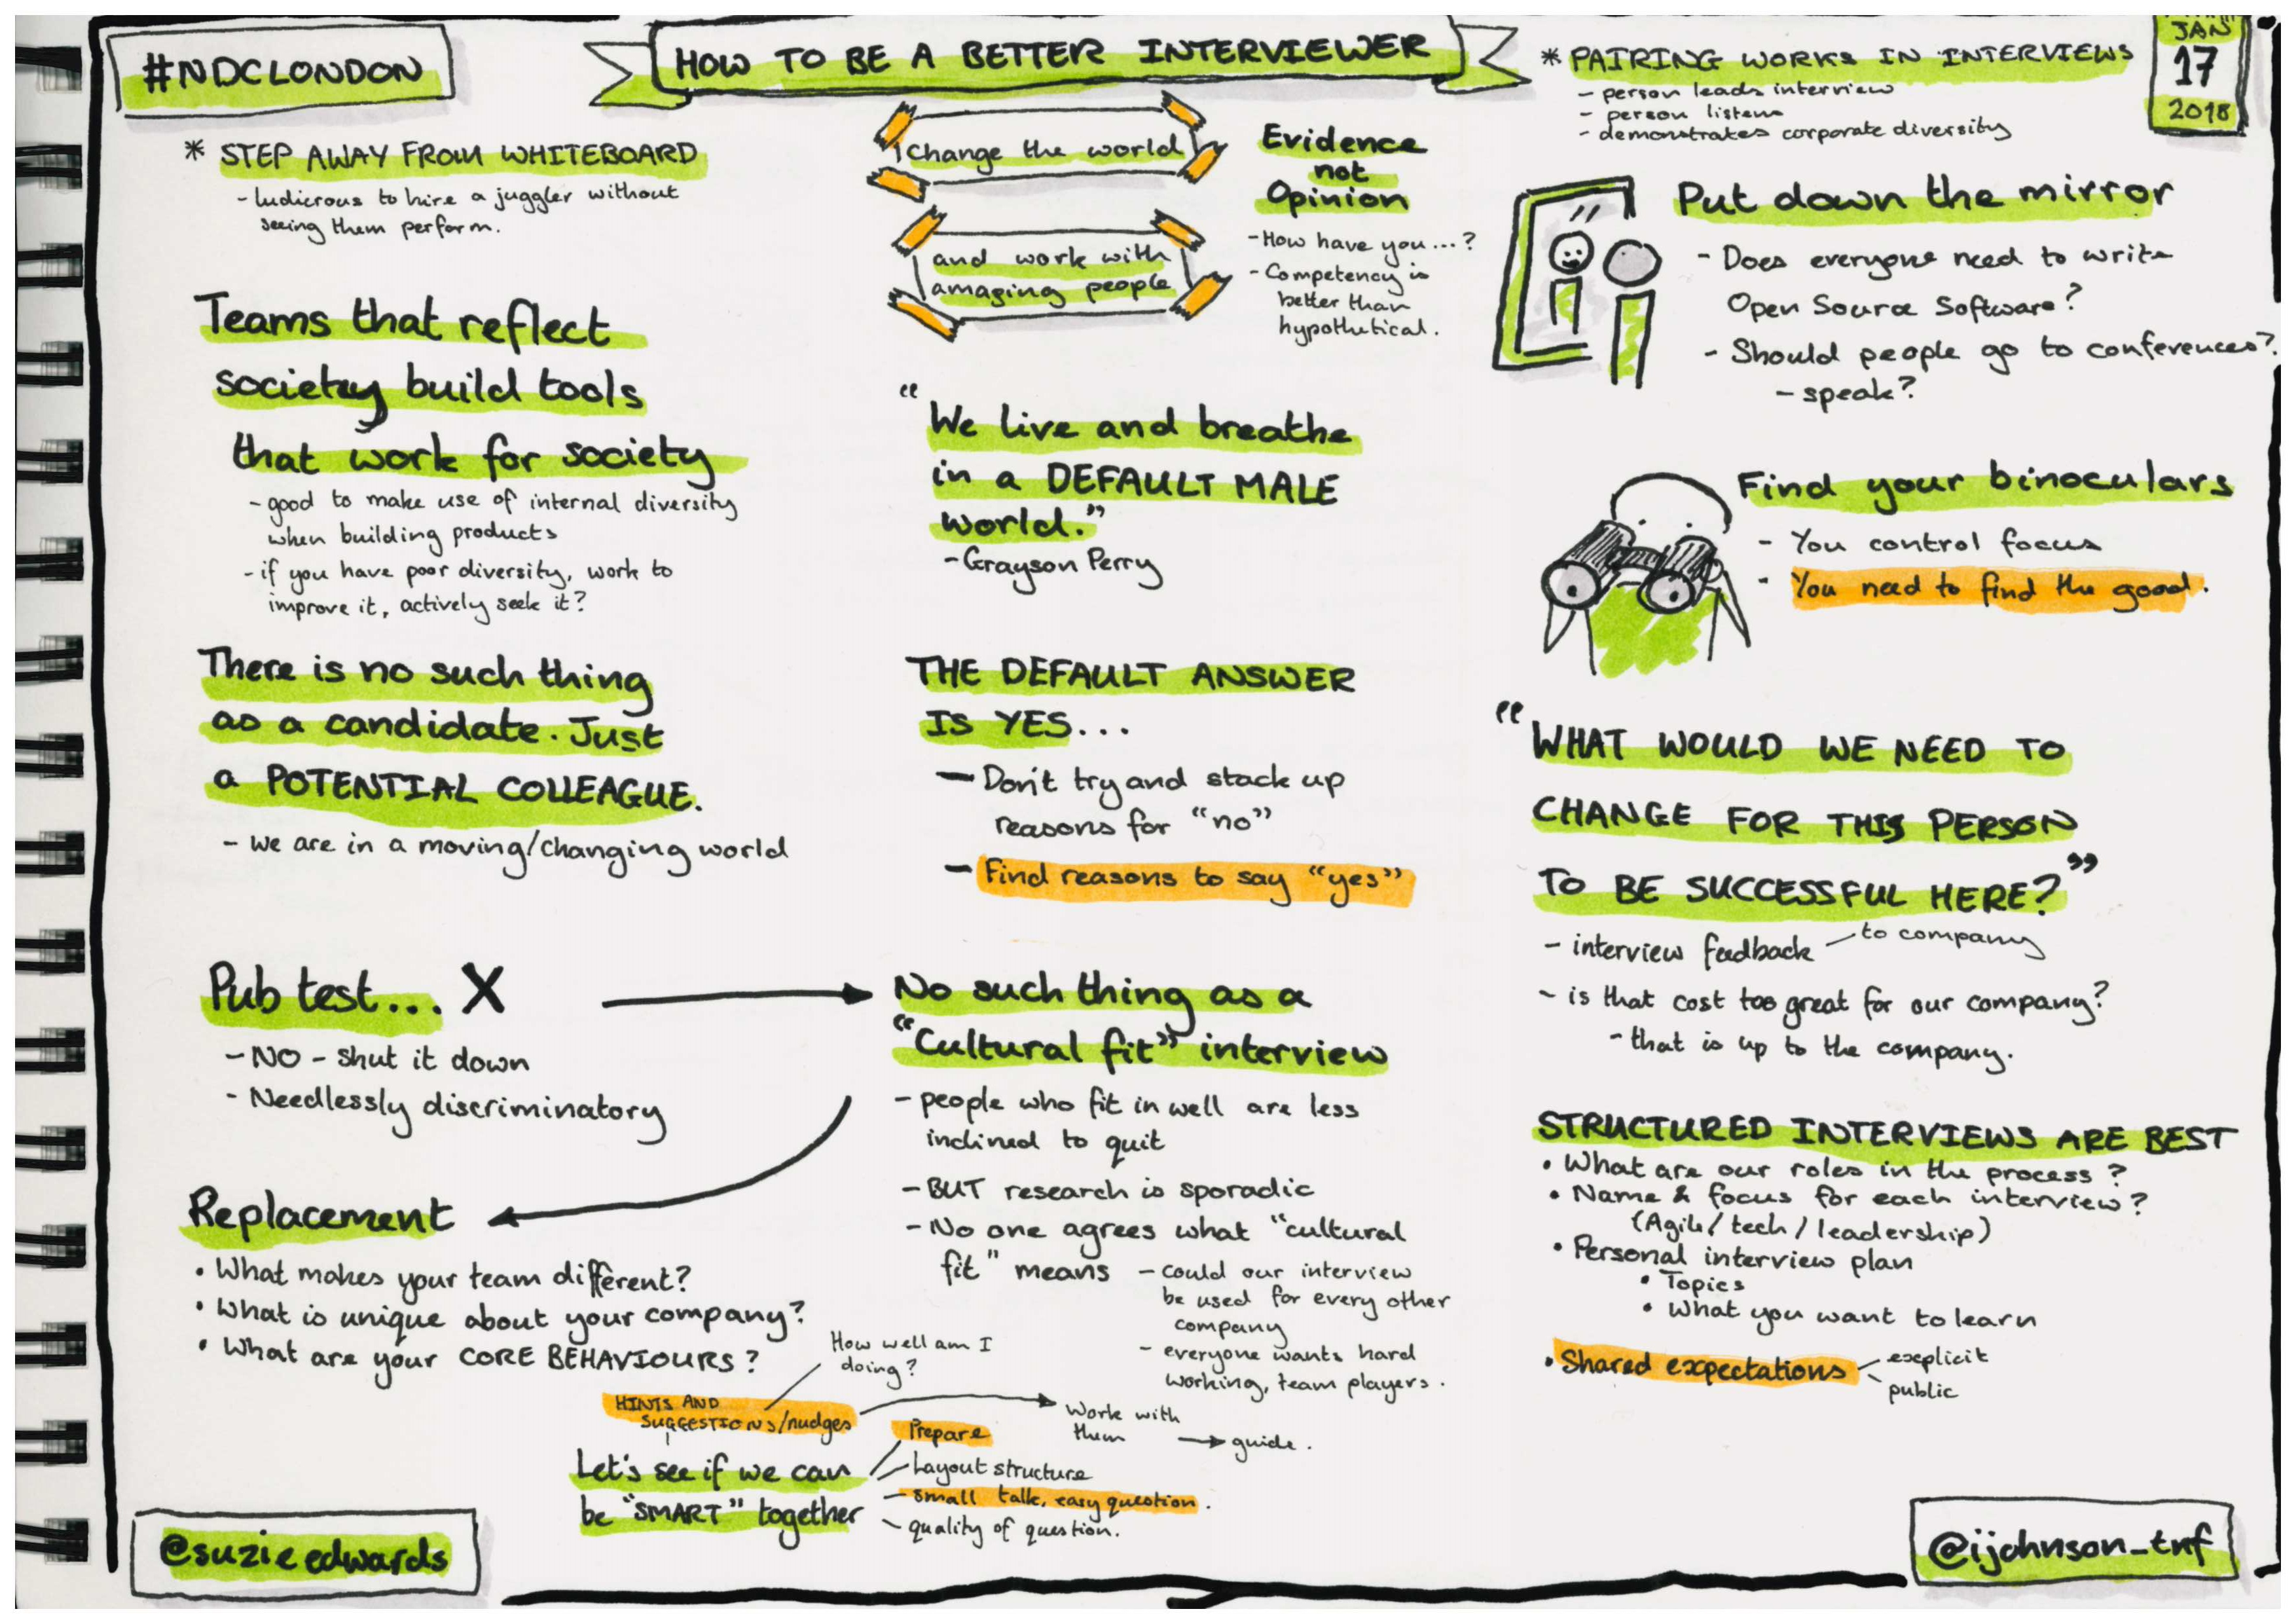 Sketchnotes about how to be a better interviewer, change the world and work with amazing people